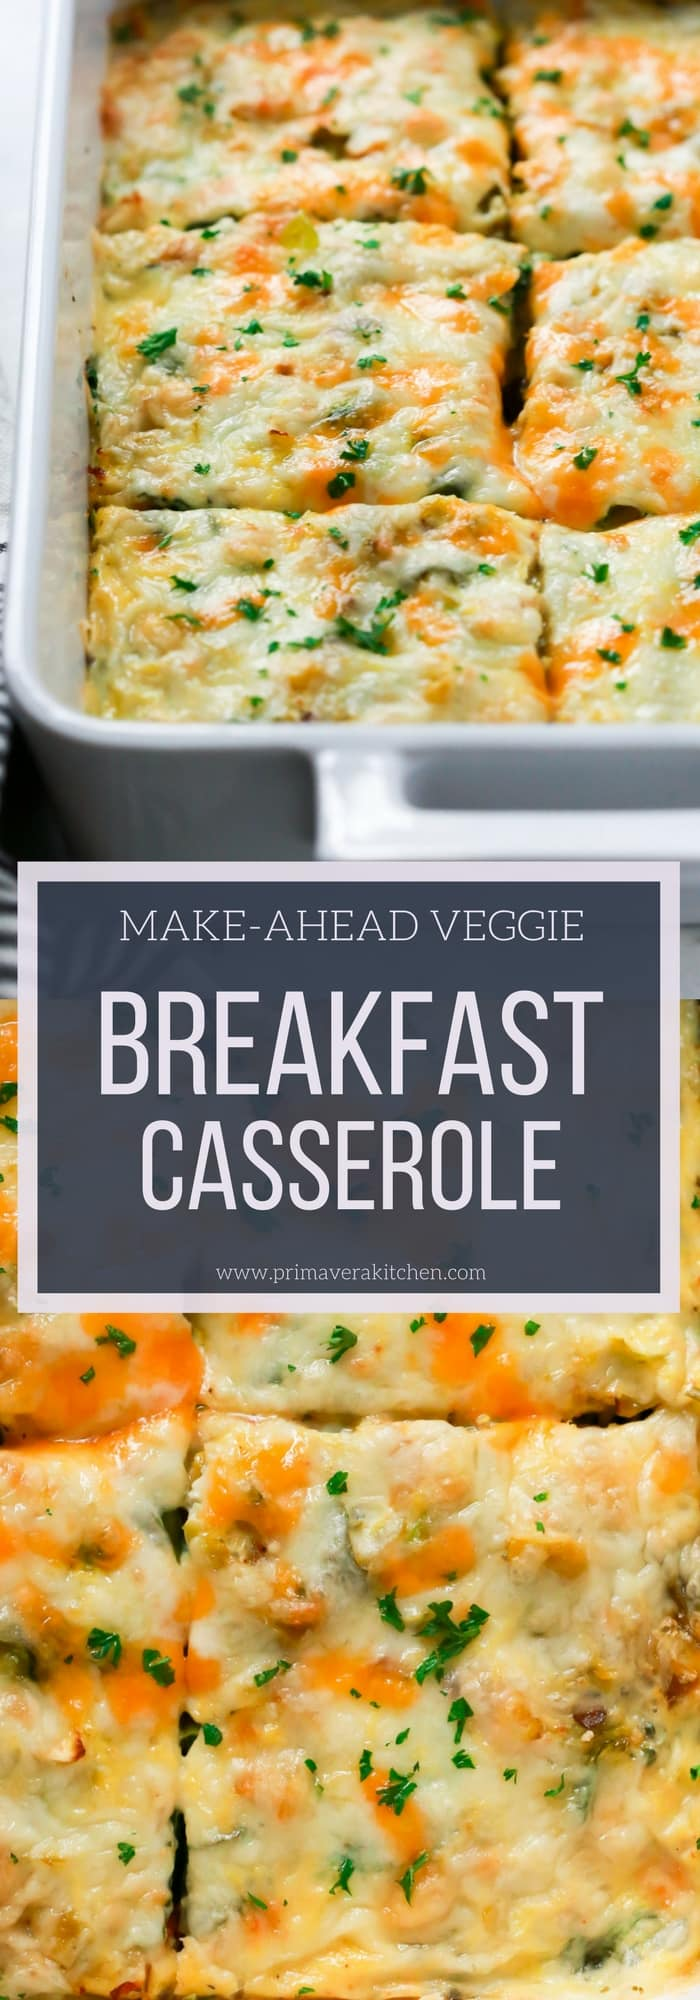 This Make-Ahead Veggie Breakfast Casserole is loaded with veggies, cheese, eggs, very easy to make and is a perfect healthy breakfast for Christmas morning!